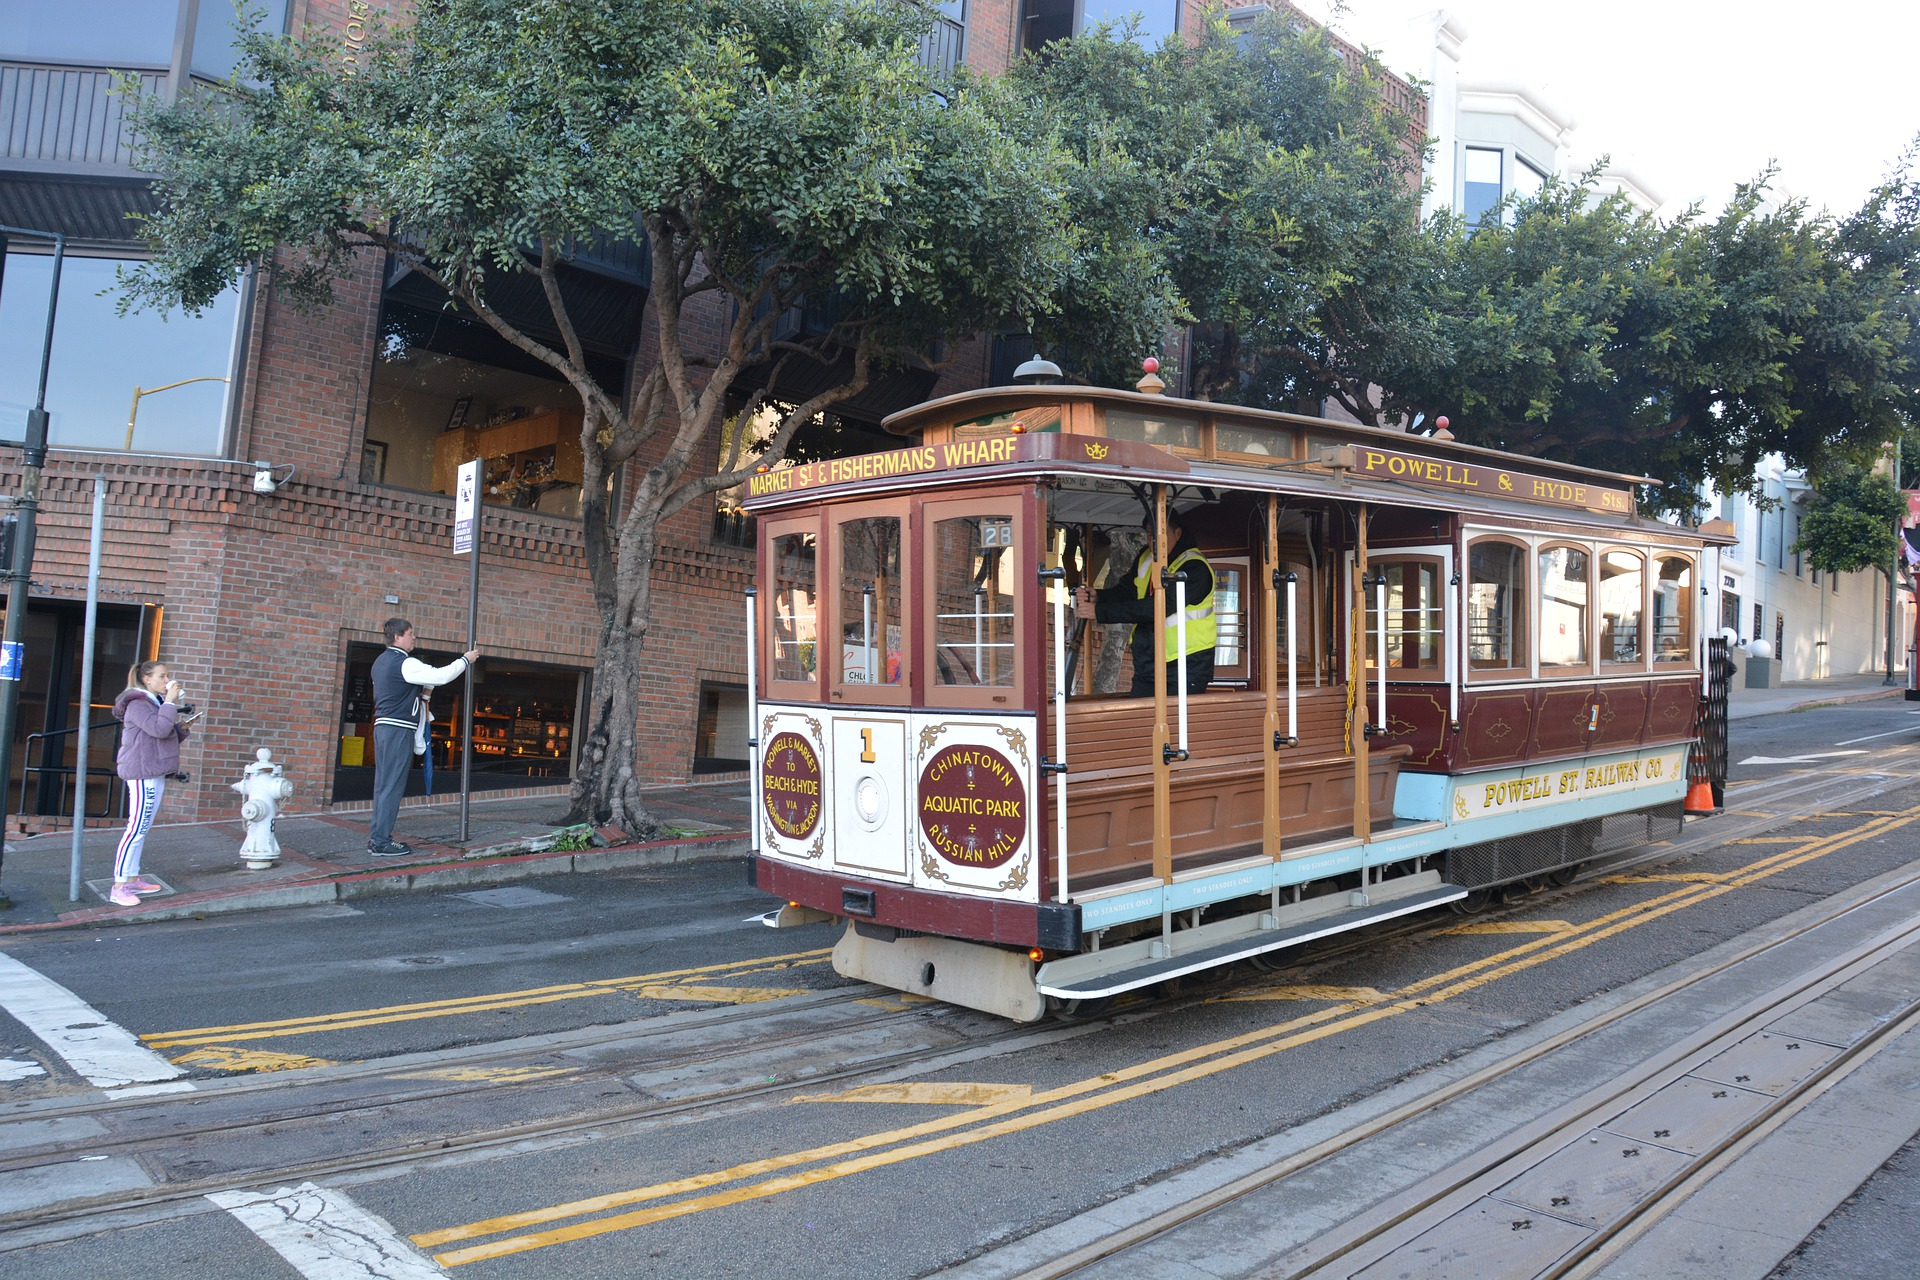 Cable Cars of San Francisco - Every Tourists Must Ride in Cable Car For a Memorable SF Trip